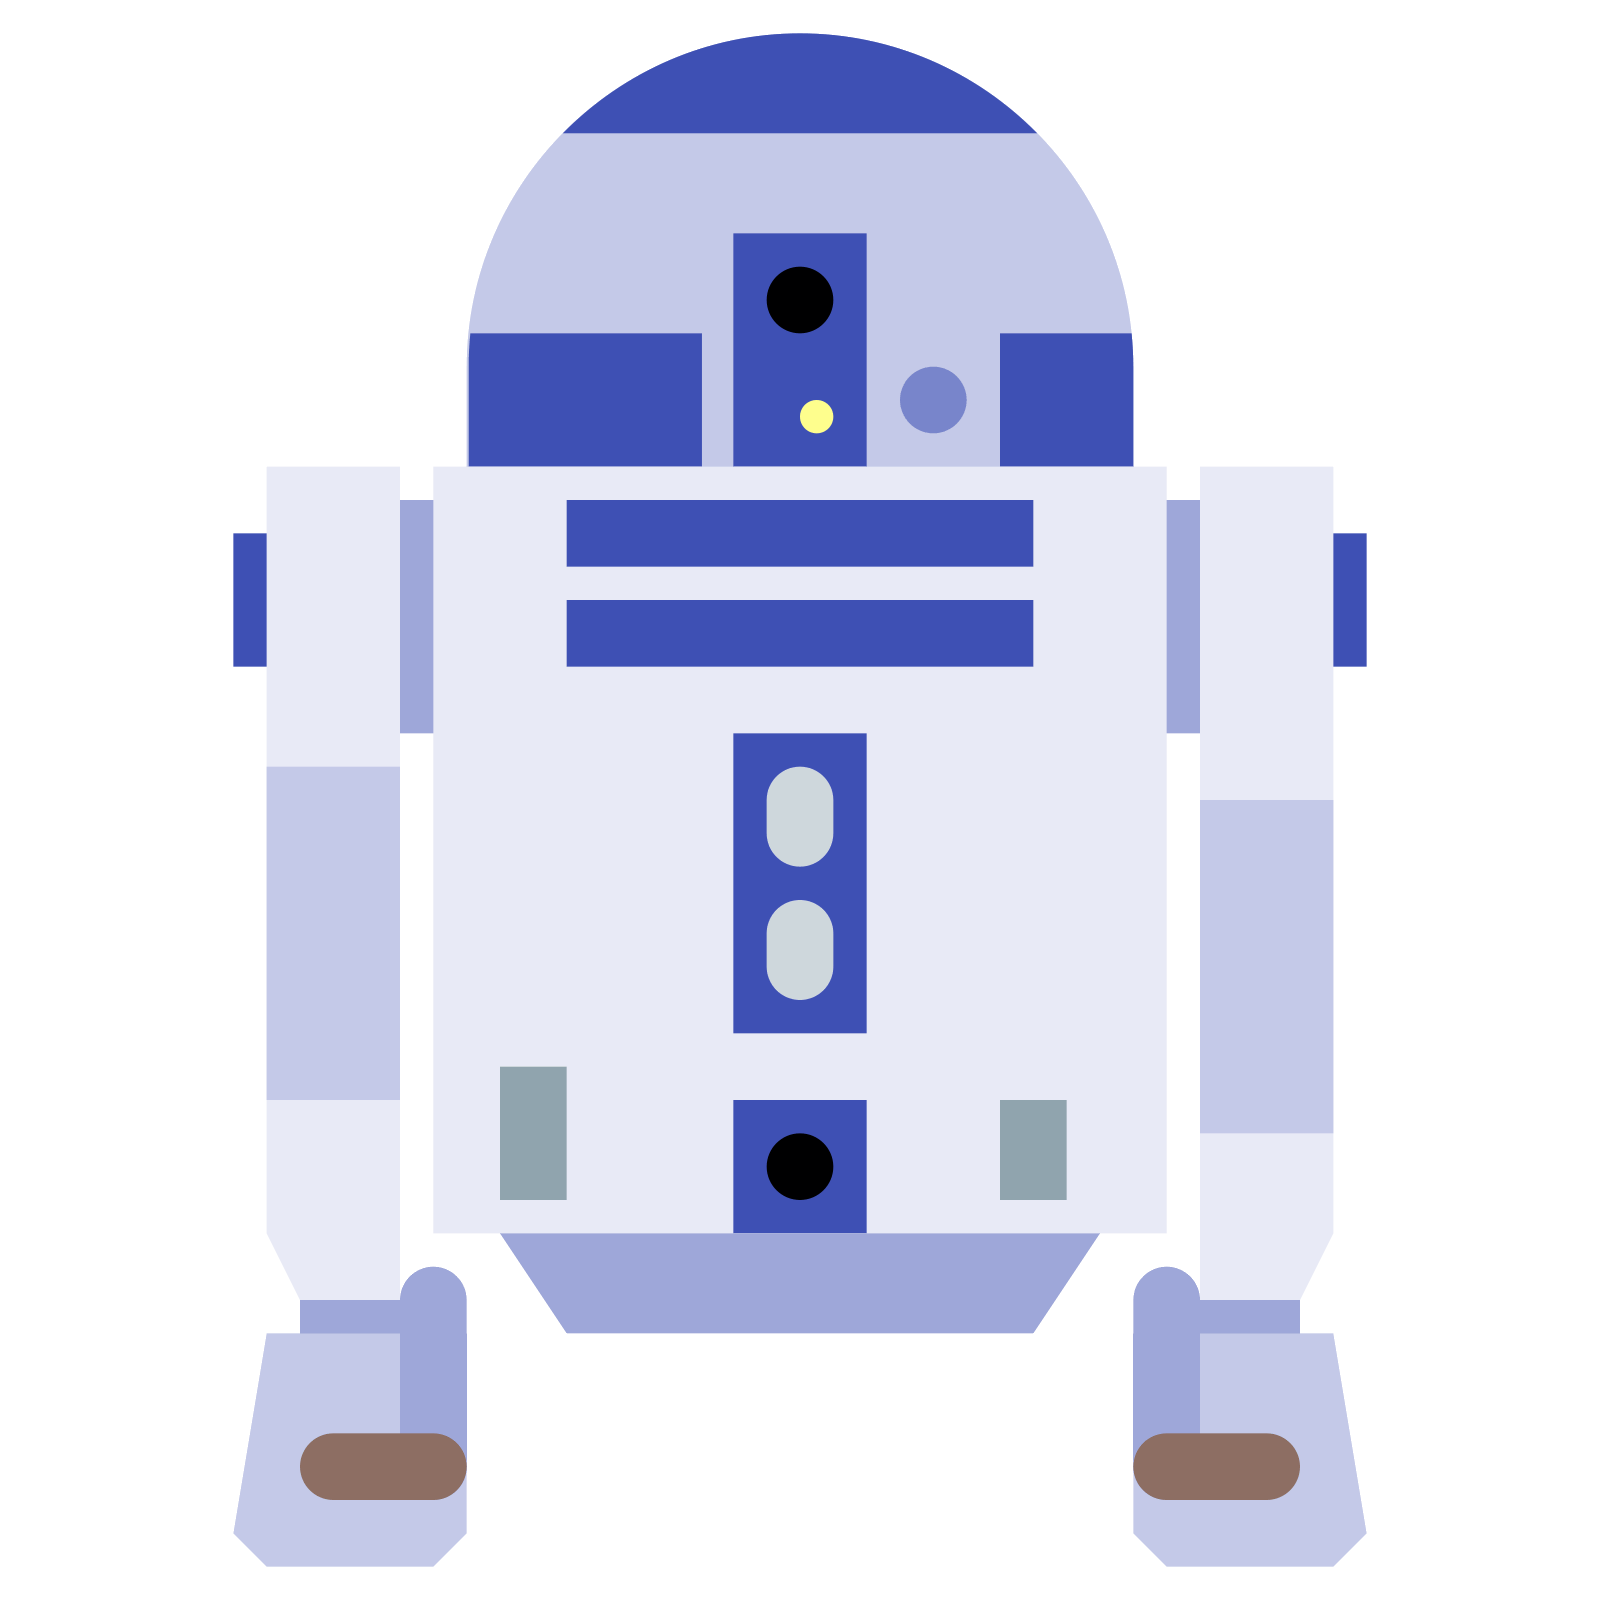 Star wars clipart r2d2 clip free library R2-D2 Icon - free download, PNG and vector clip free library